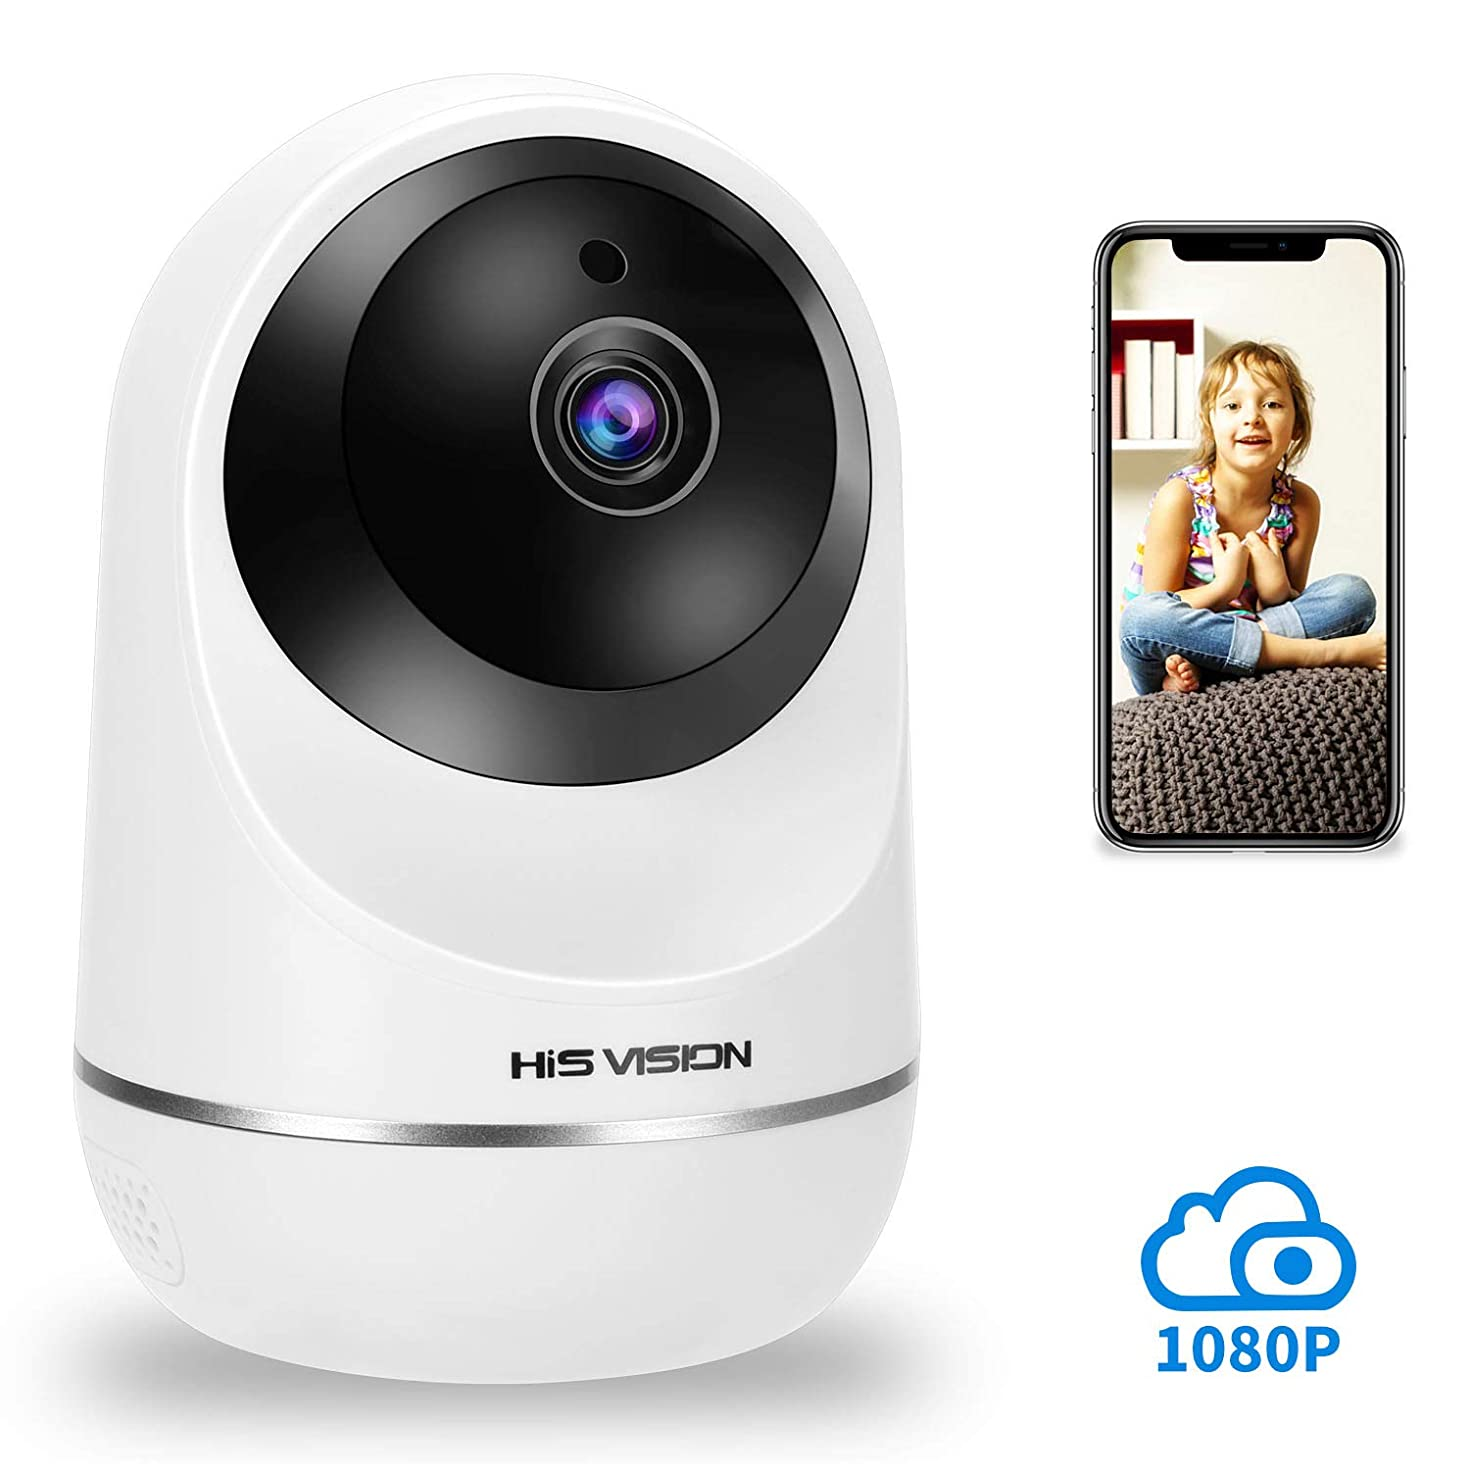 HISVISION Wireless 1080P IP Camera, WiFi Home Security Surveillance HD Camera Activity Detection Alert,Motion Tracking Baby/Pet Monitor Nanny Cam, Night Vision/Two-Way Audio with SD Card Slot & Cloud